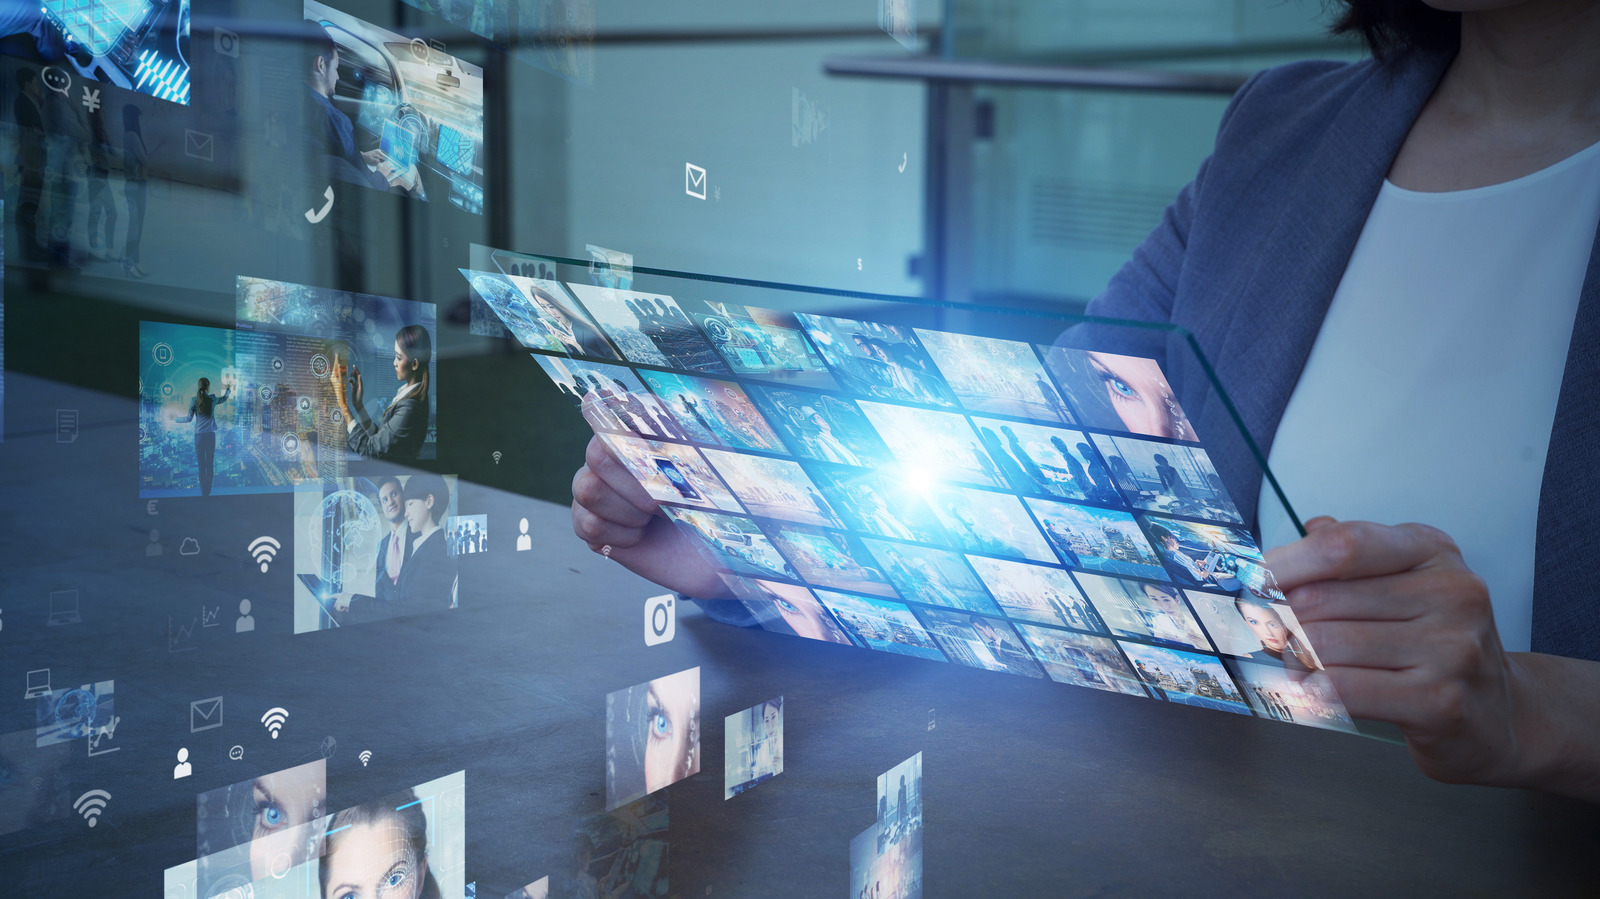 Today, visual content can be accessed through smartphones and laptops owing to the emergence of over the top (OTT) service providers such as Netflix